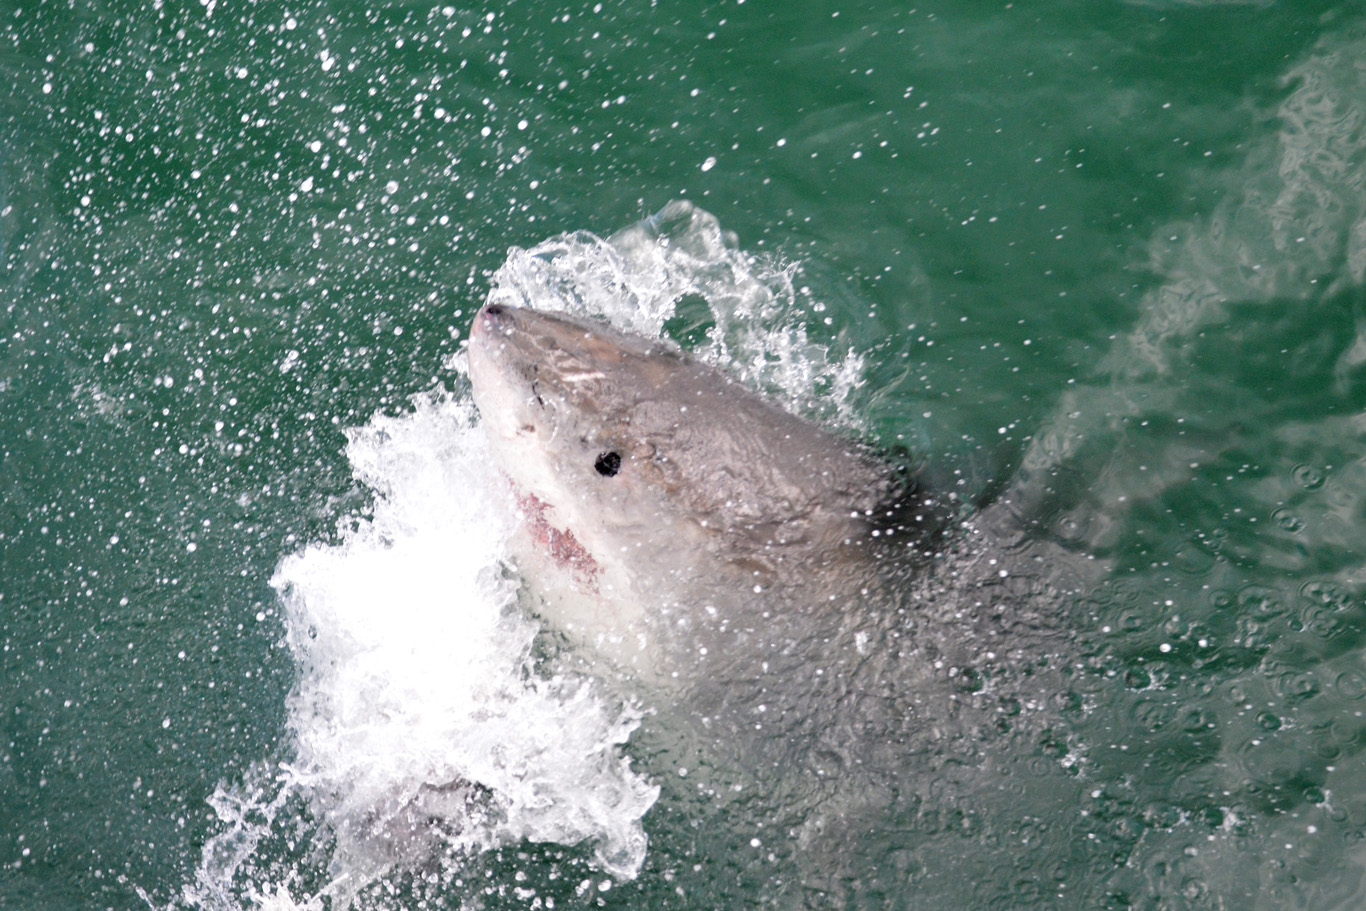 Another shark jumping out of water